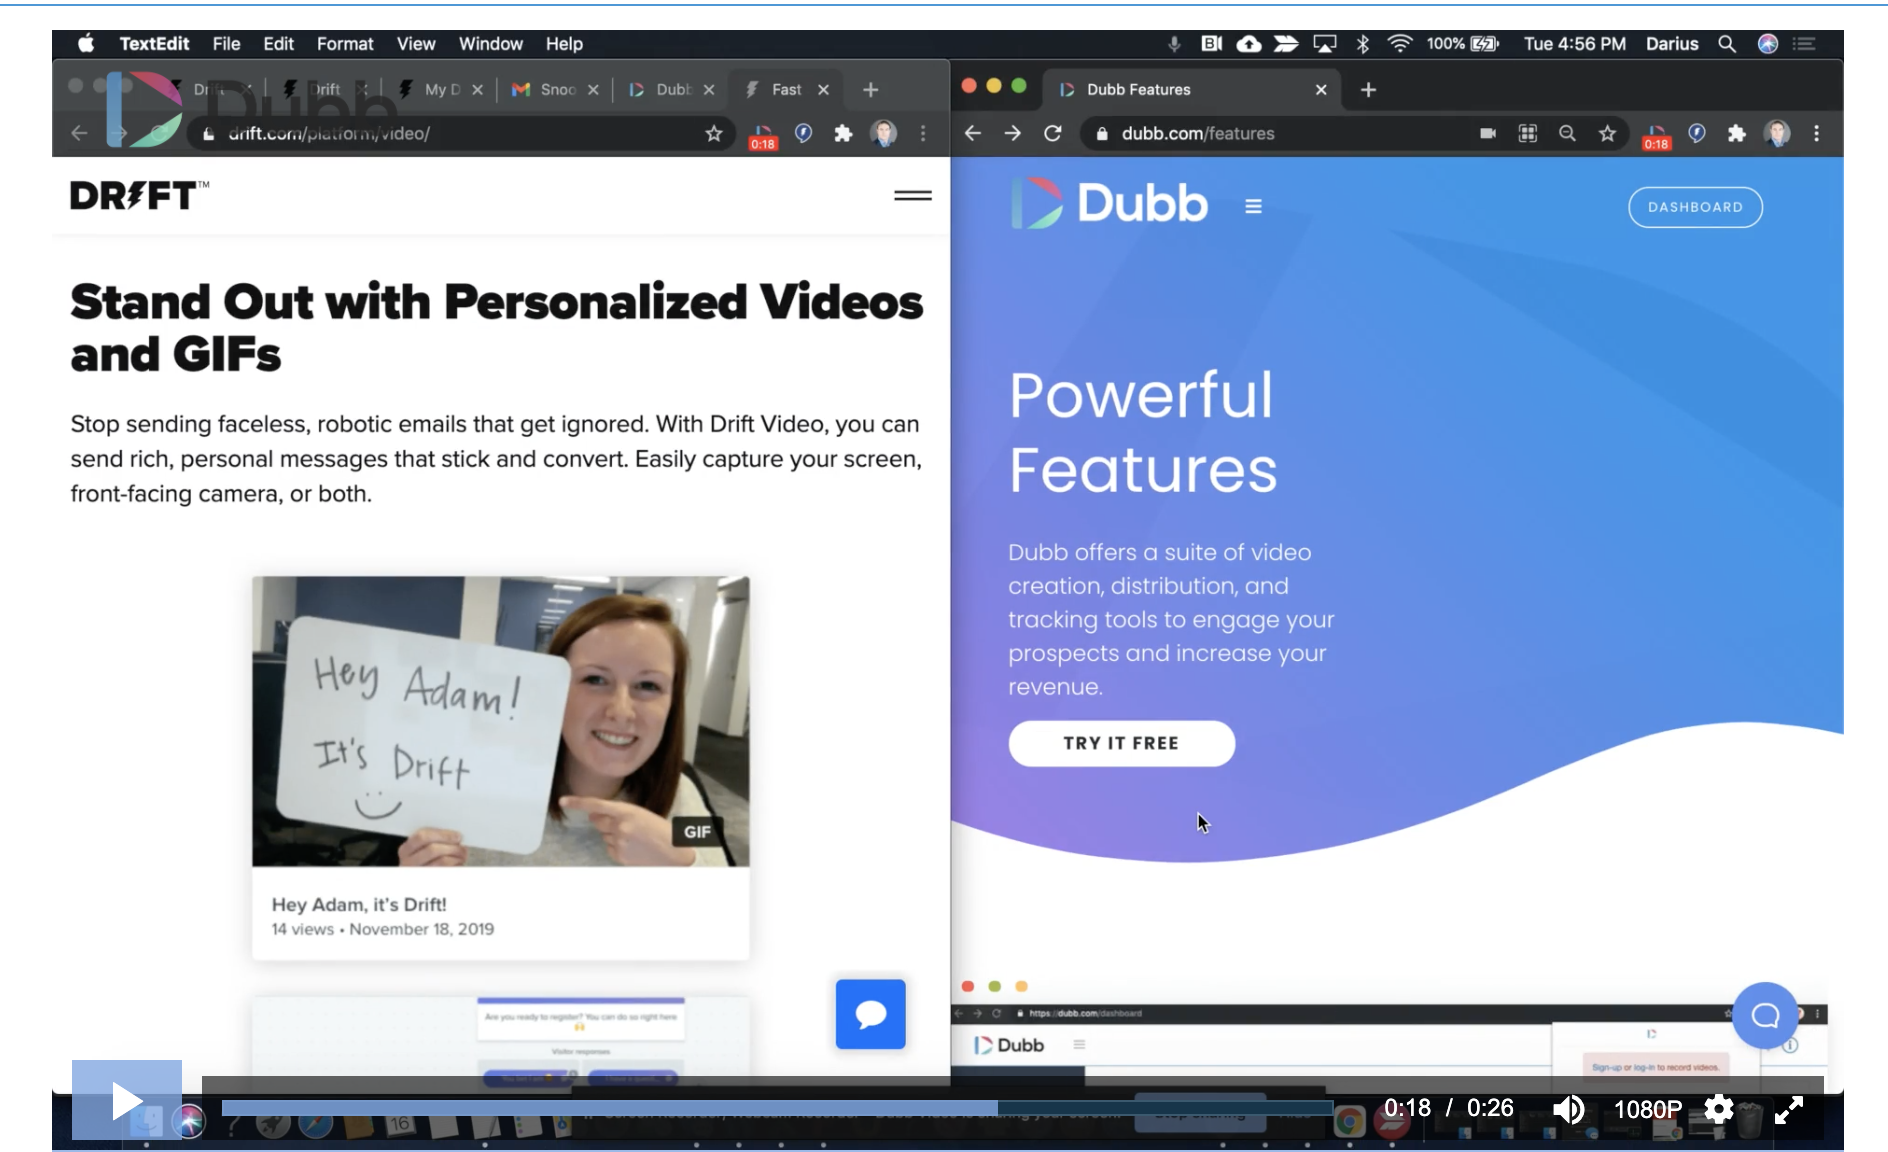 Drift Video Pricing vs. Dubb Pricing